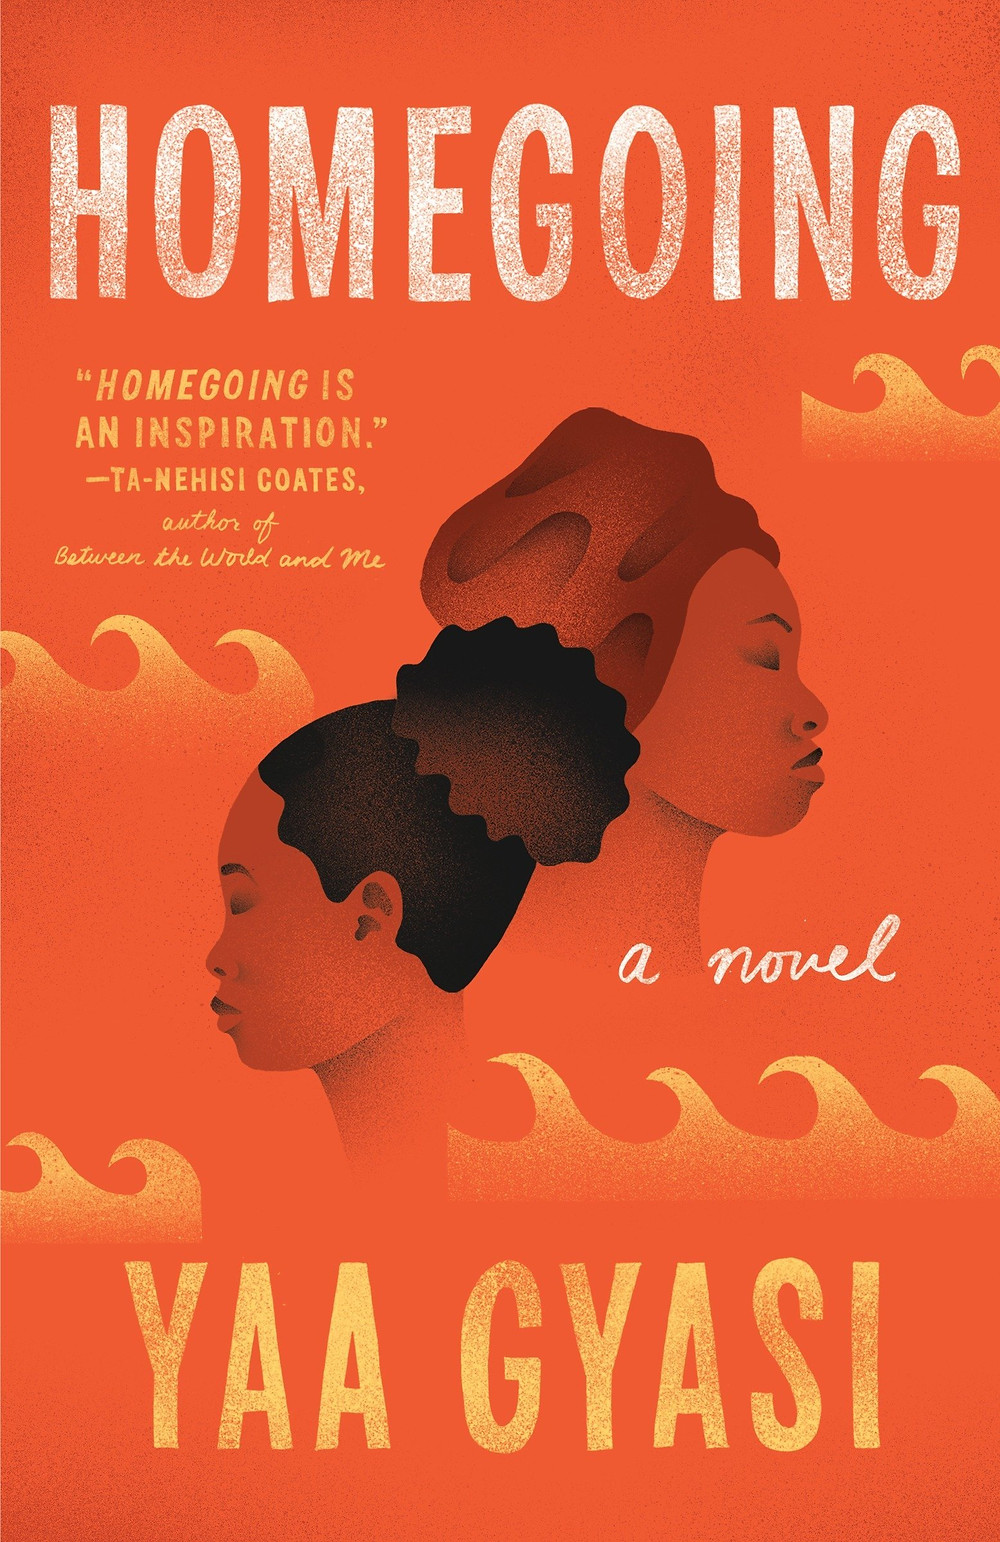 Homegoing by Yaa Gyasi : the book slut book reviews thebookslut